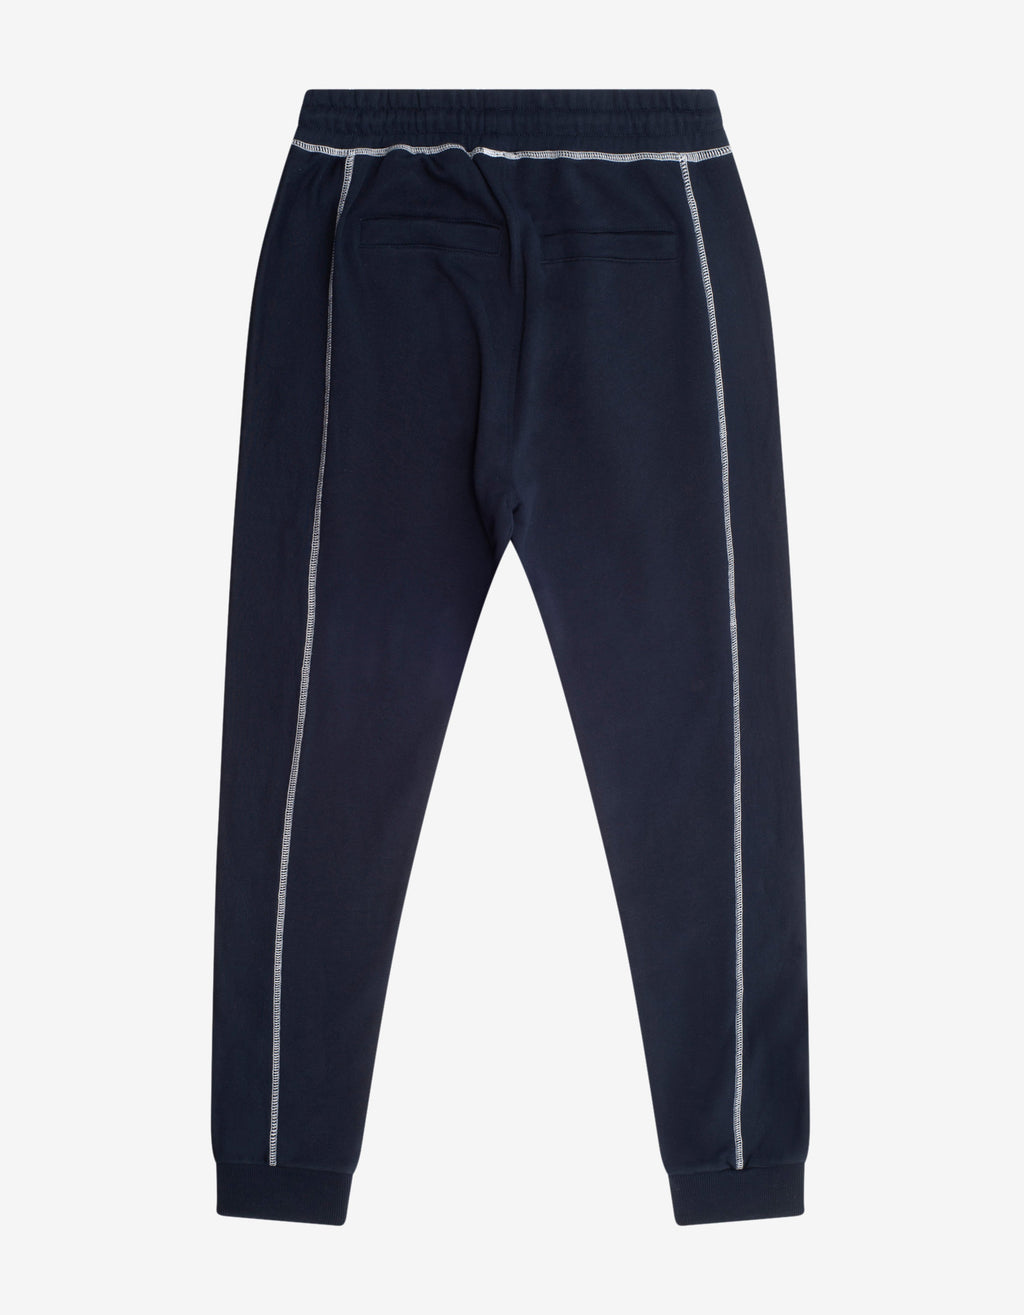 Navy Blue Tiger Crest Sweat Pants